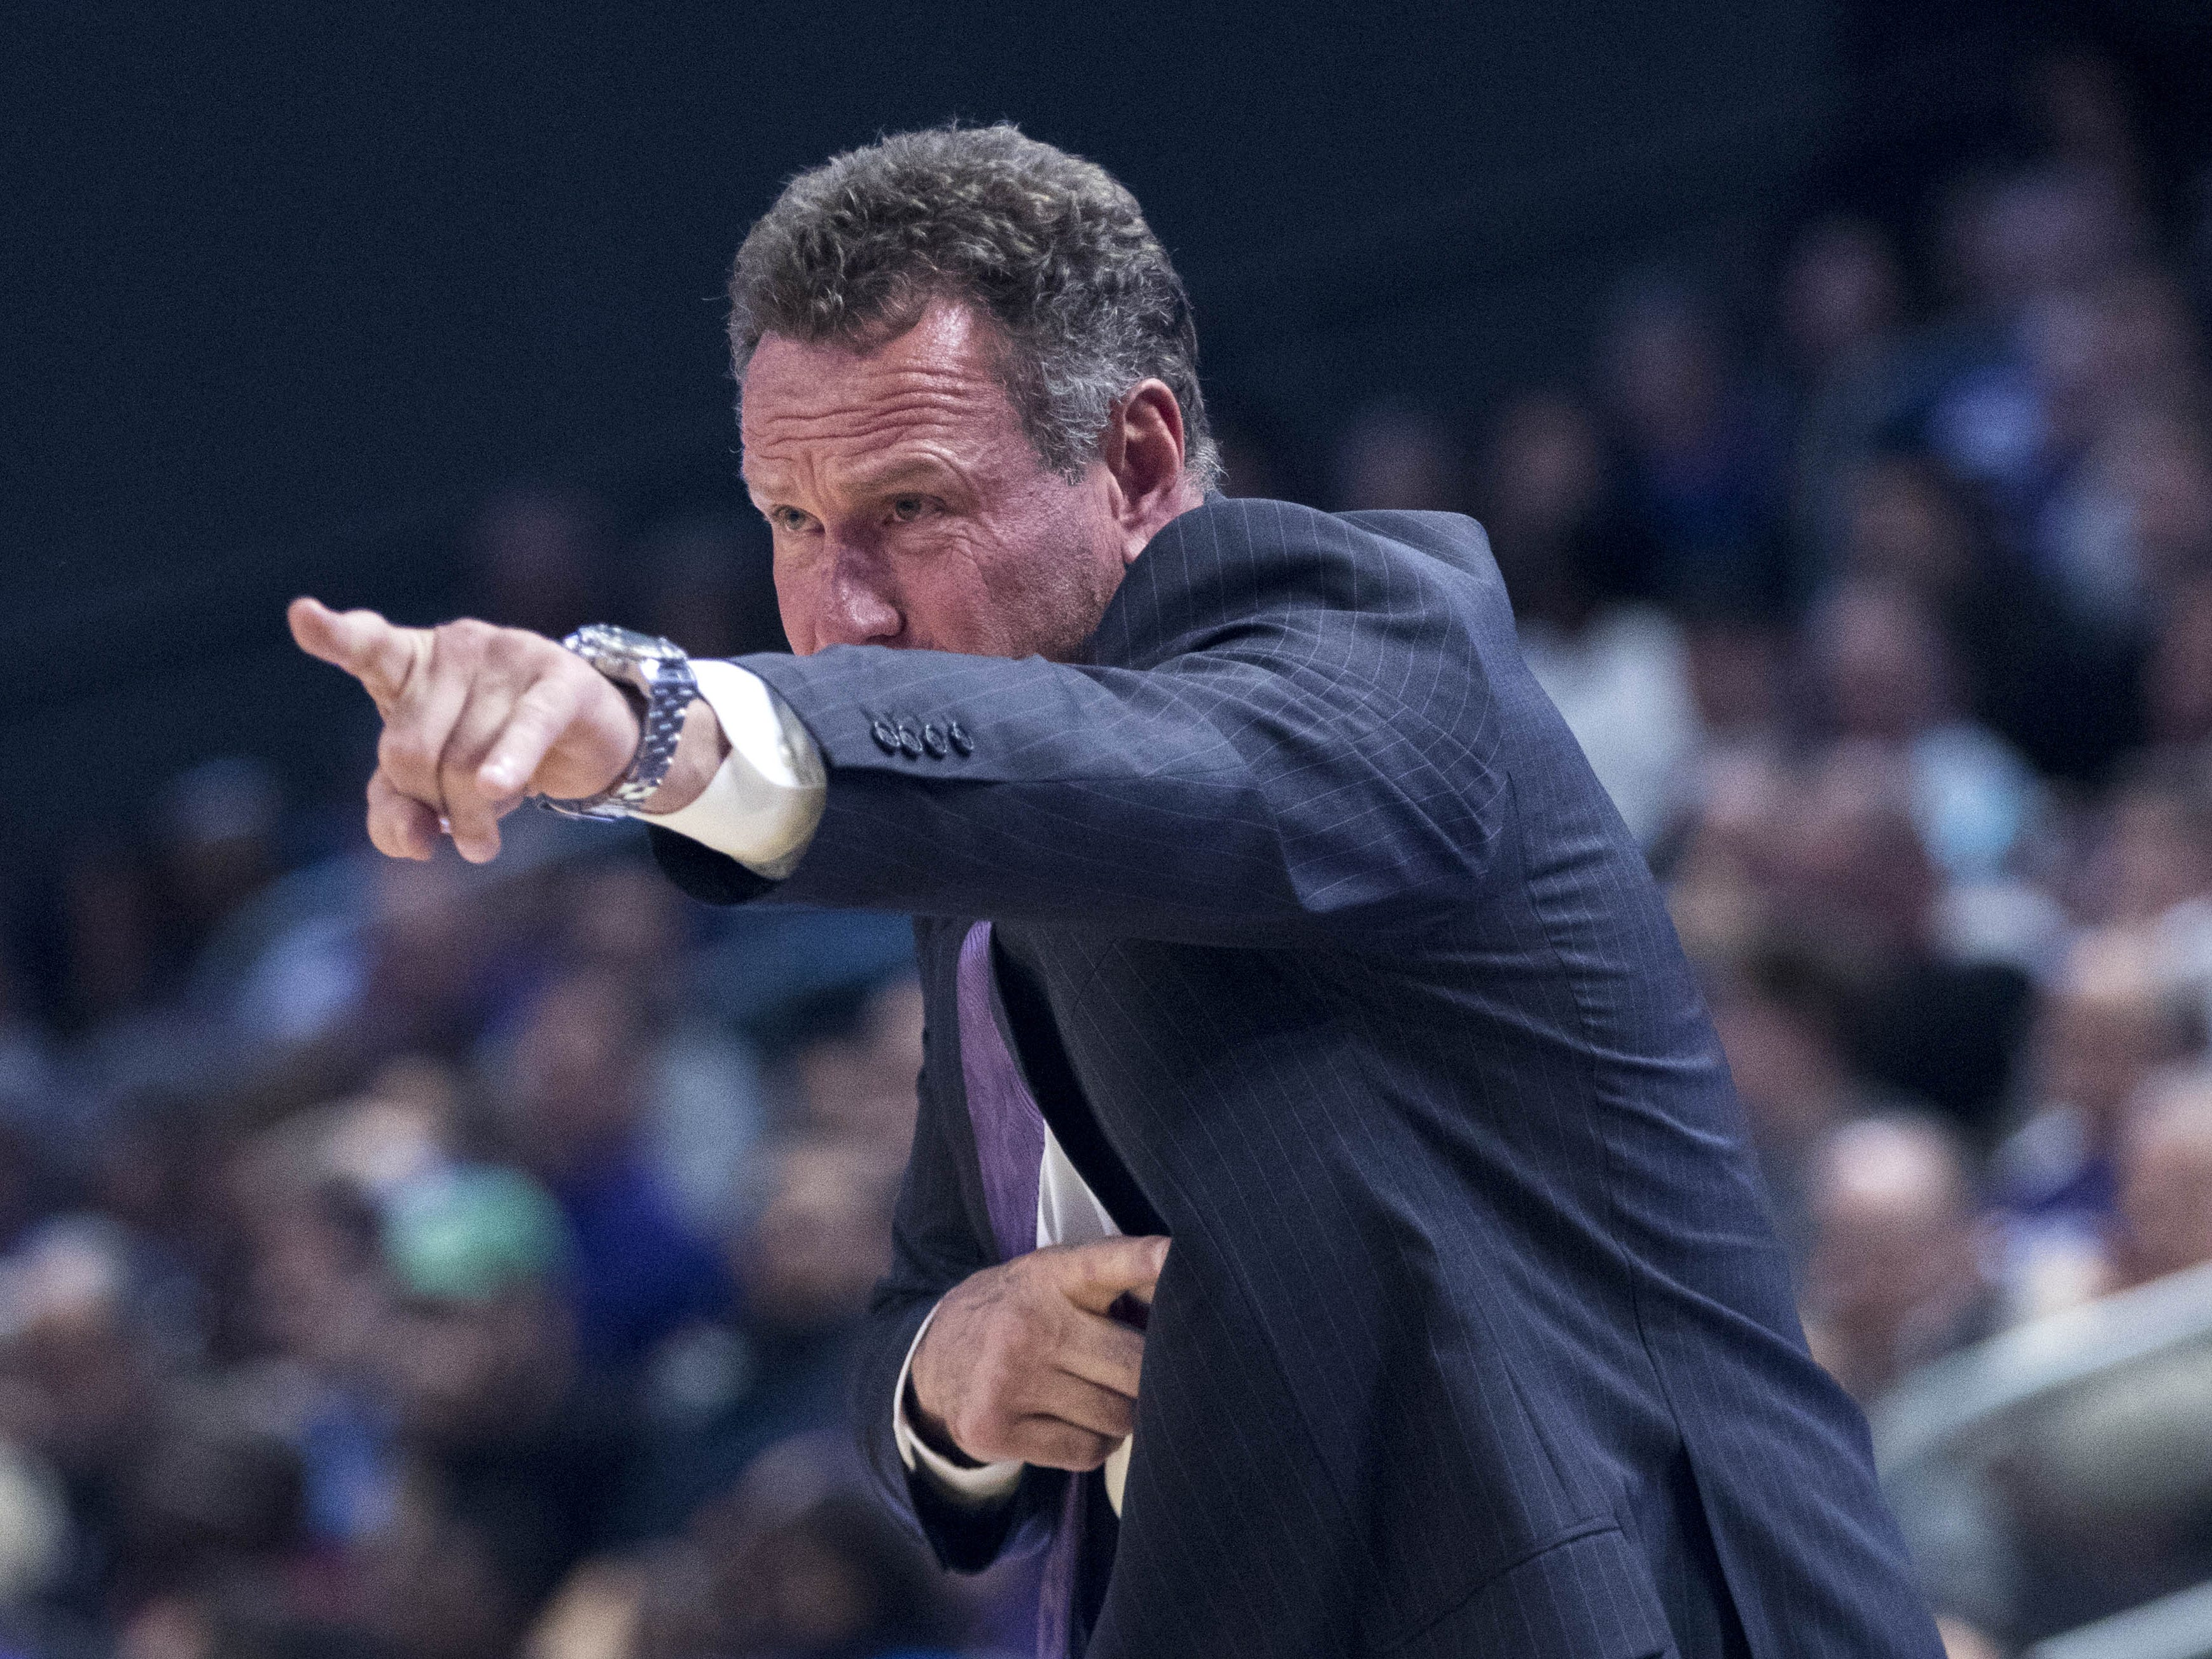 Grand Canyon University head coach Dan Majerle calls out a play during the second half of their game in Phoenix, Monday, Nov. 11, 2018.